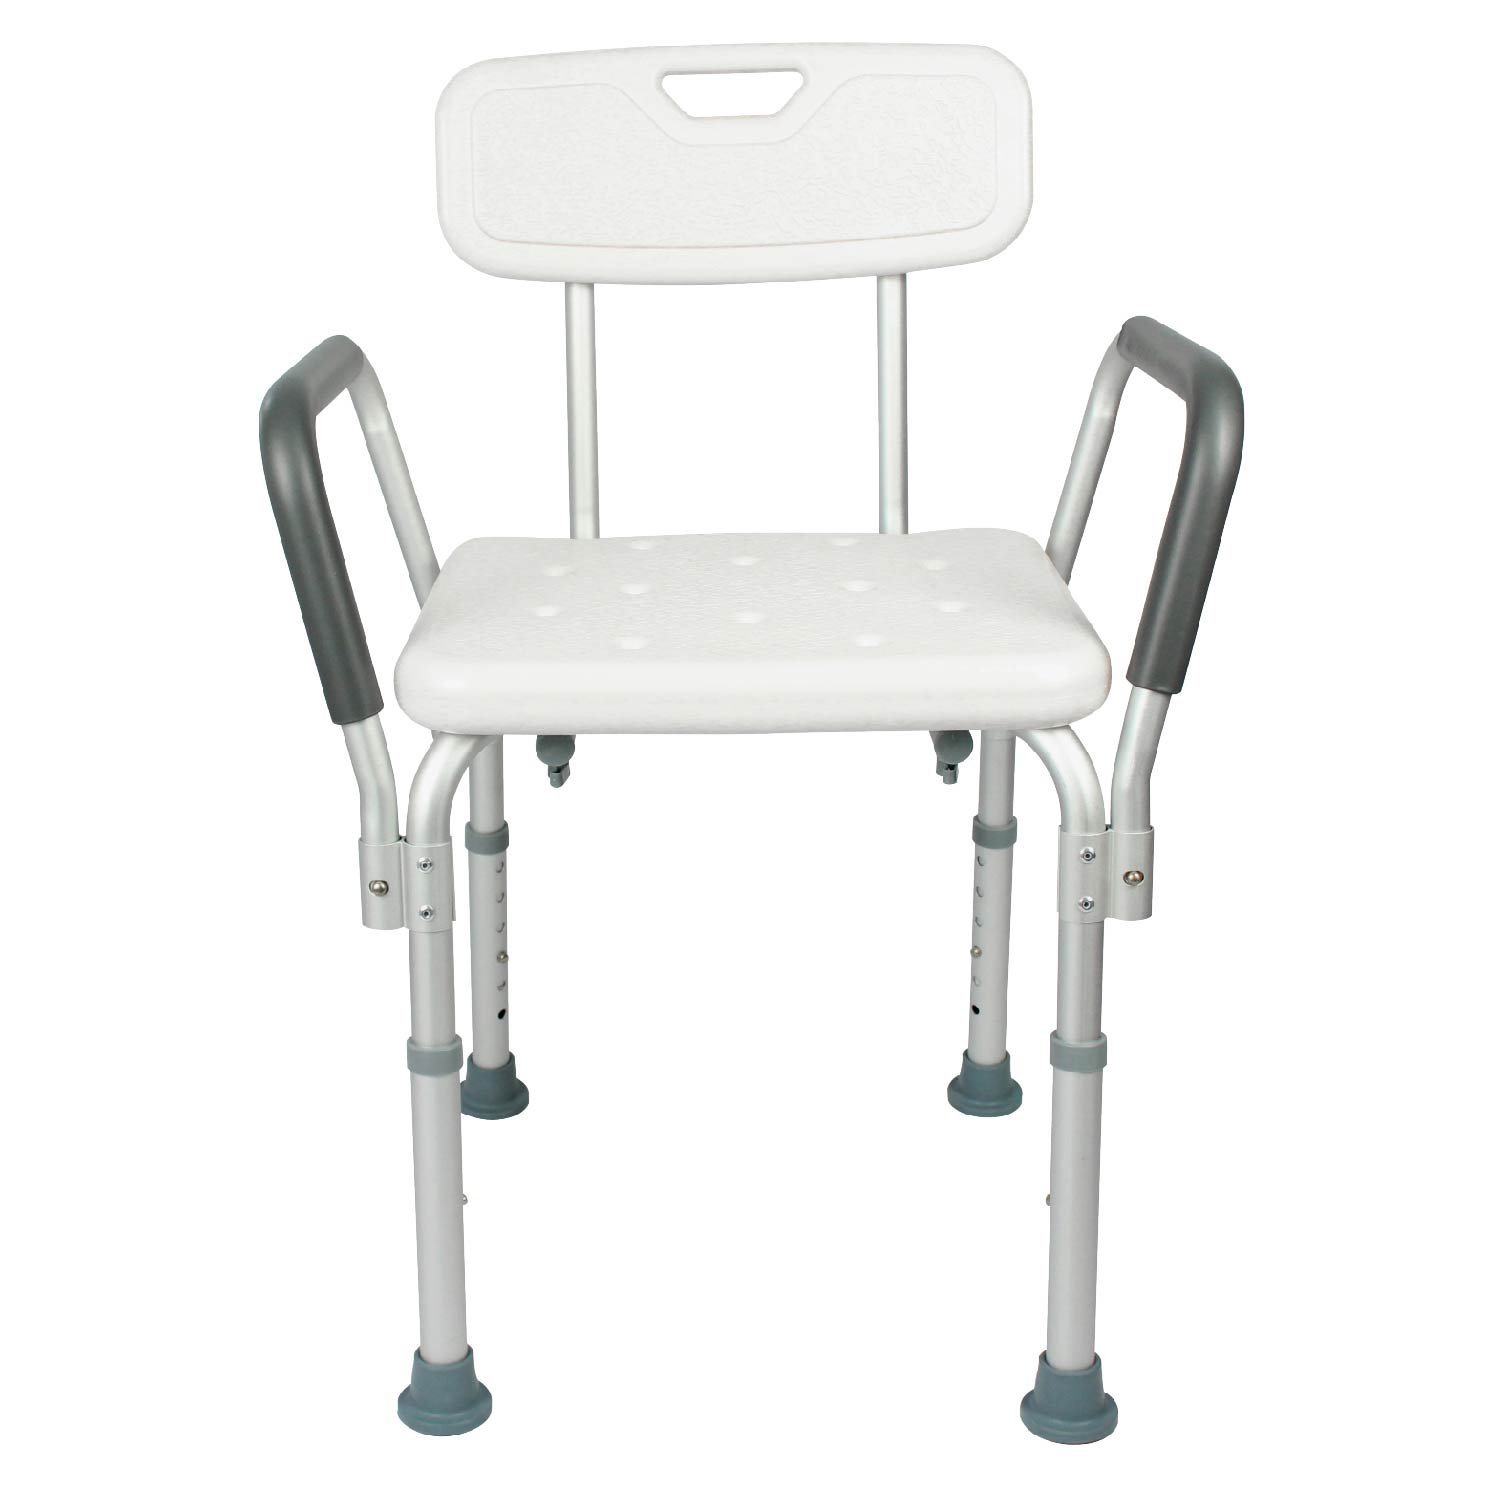 Shower Chair With Arms Interior Design